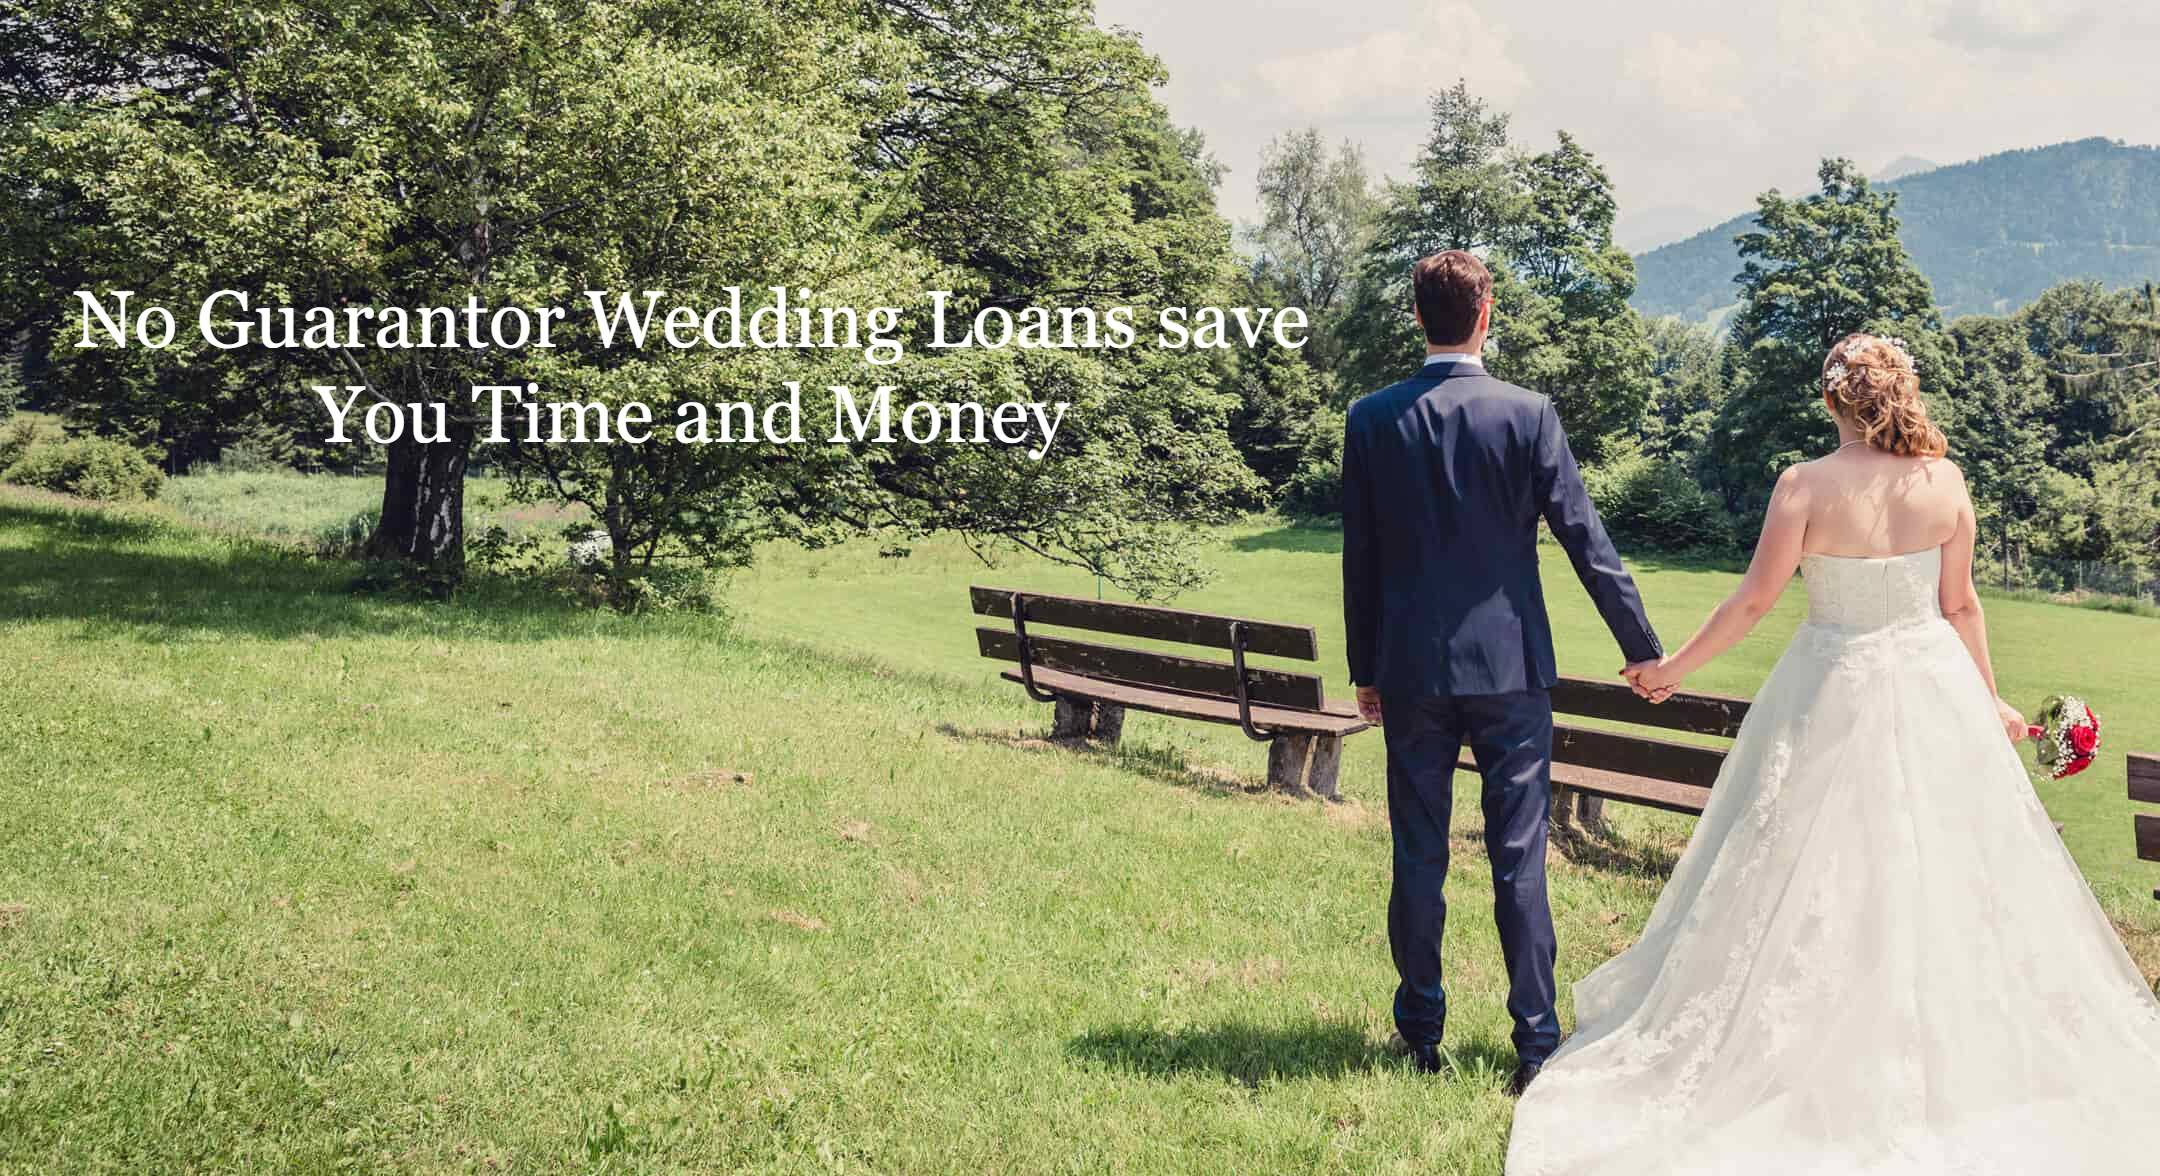 No Guarantor Wedding Loans